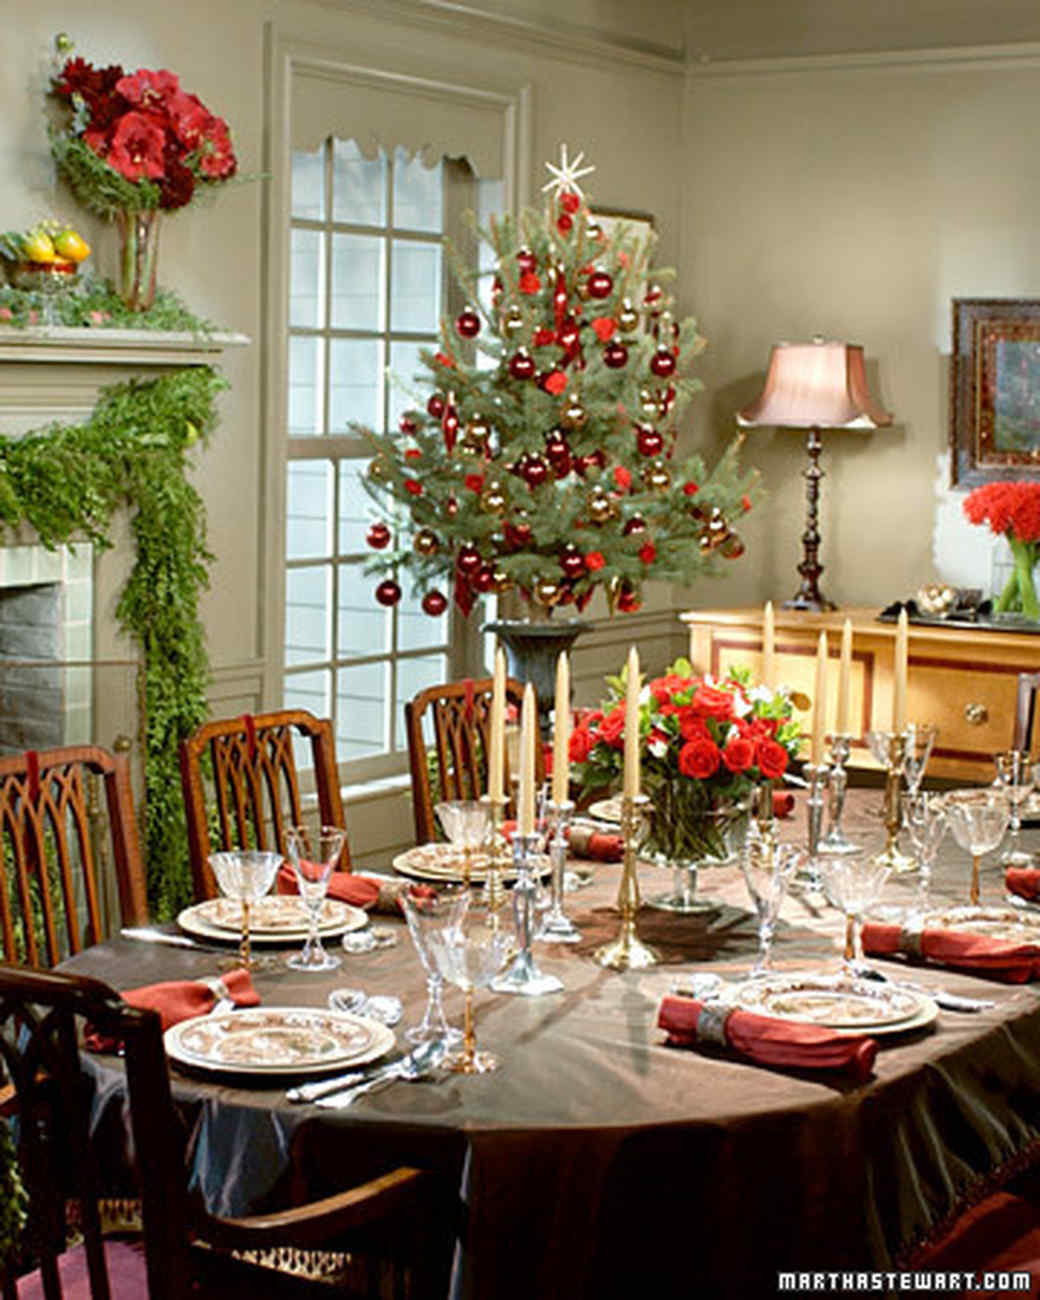 The basic rules of Christmas table setting 47